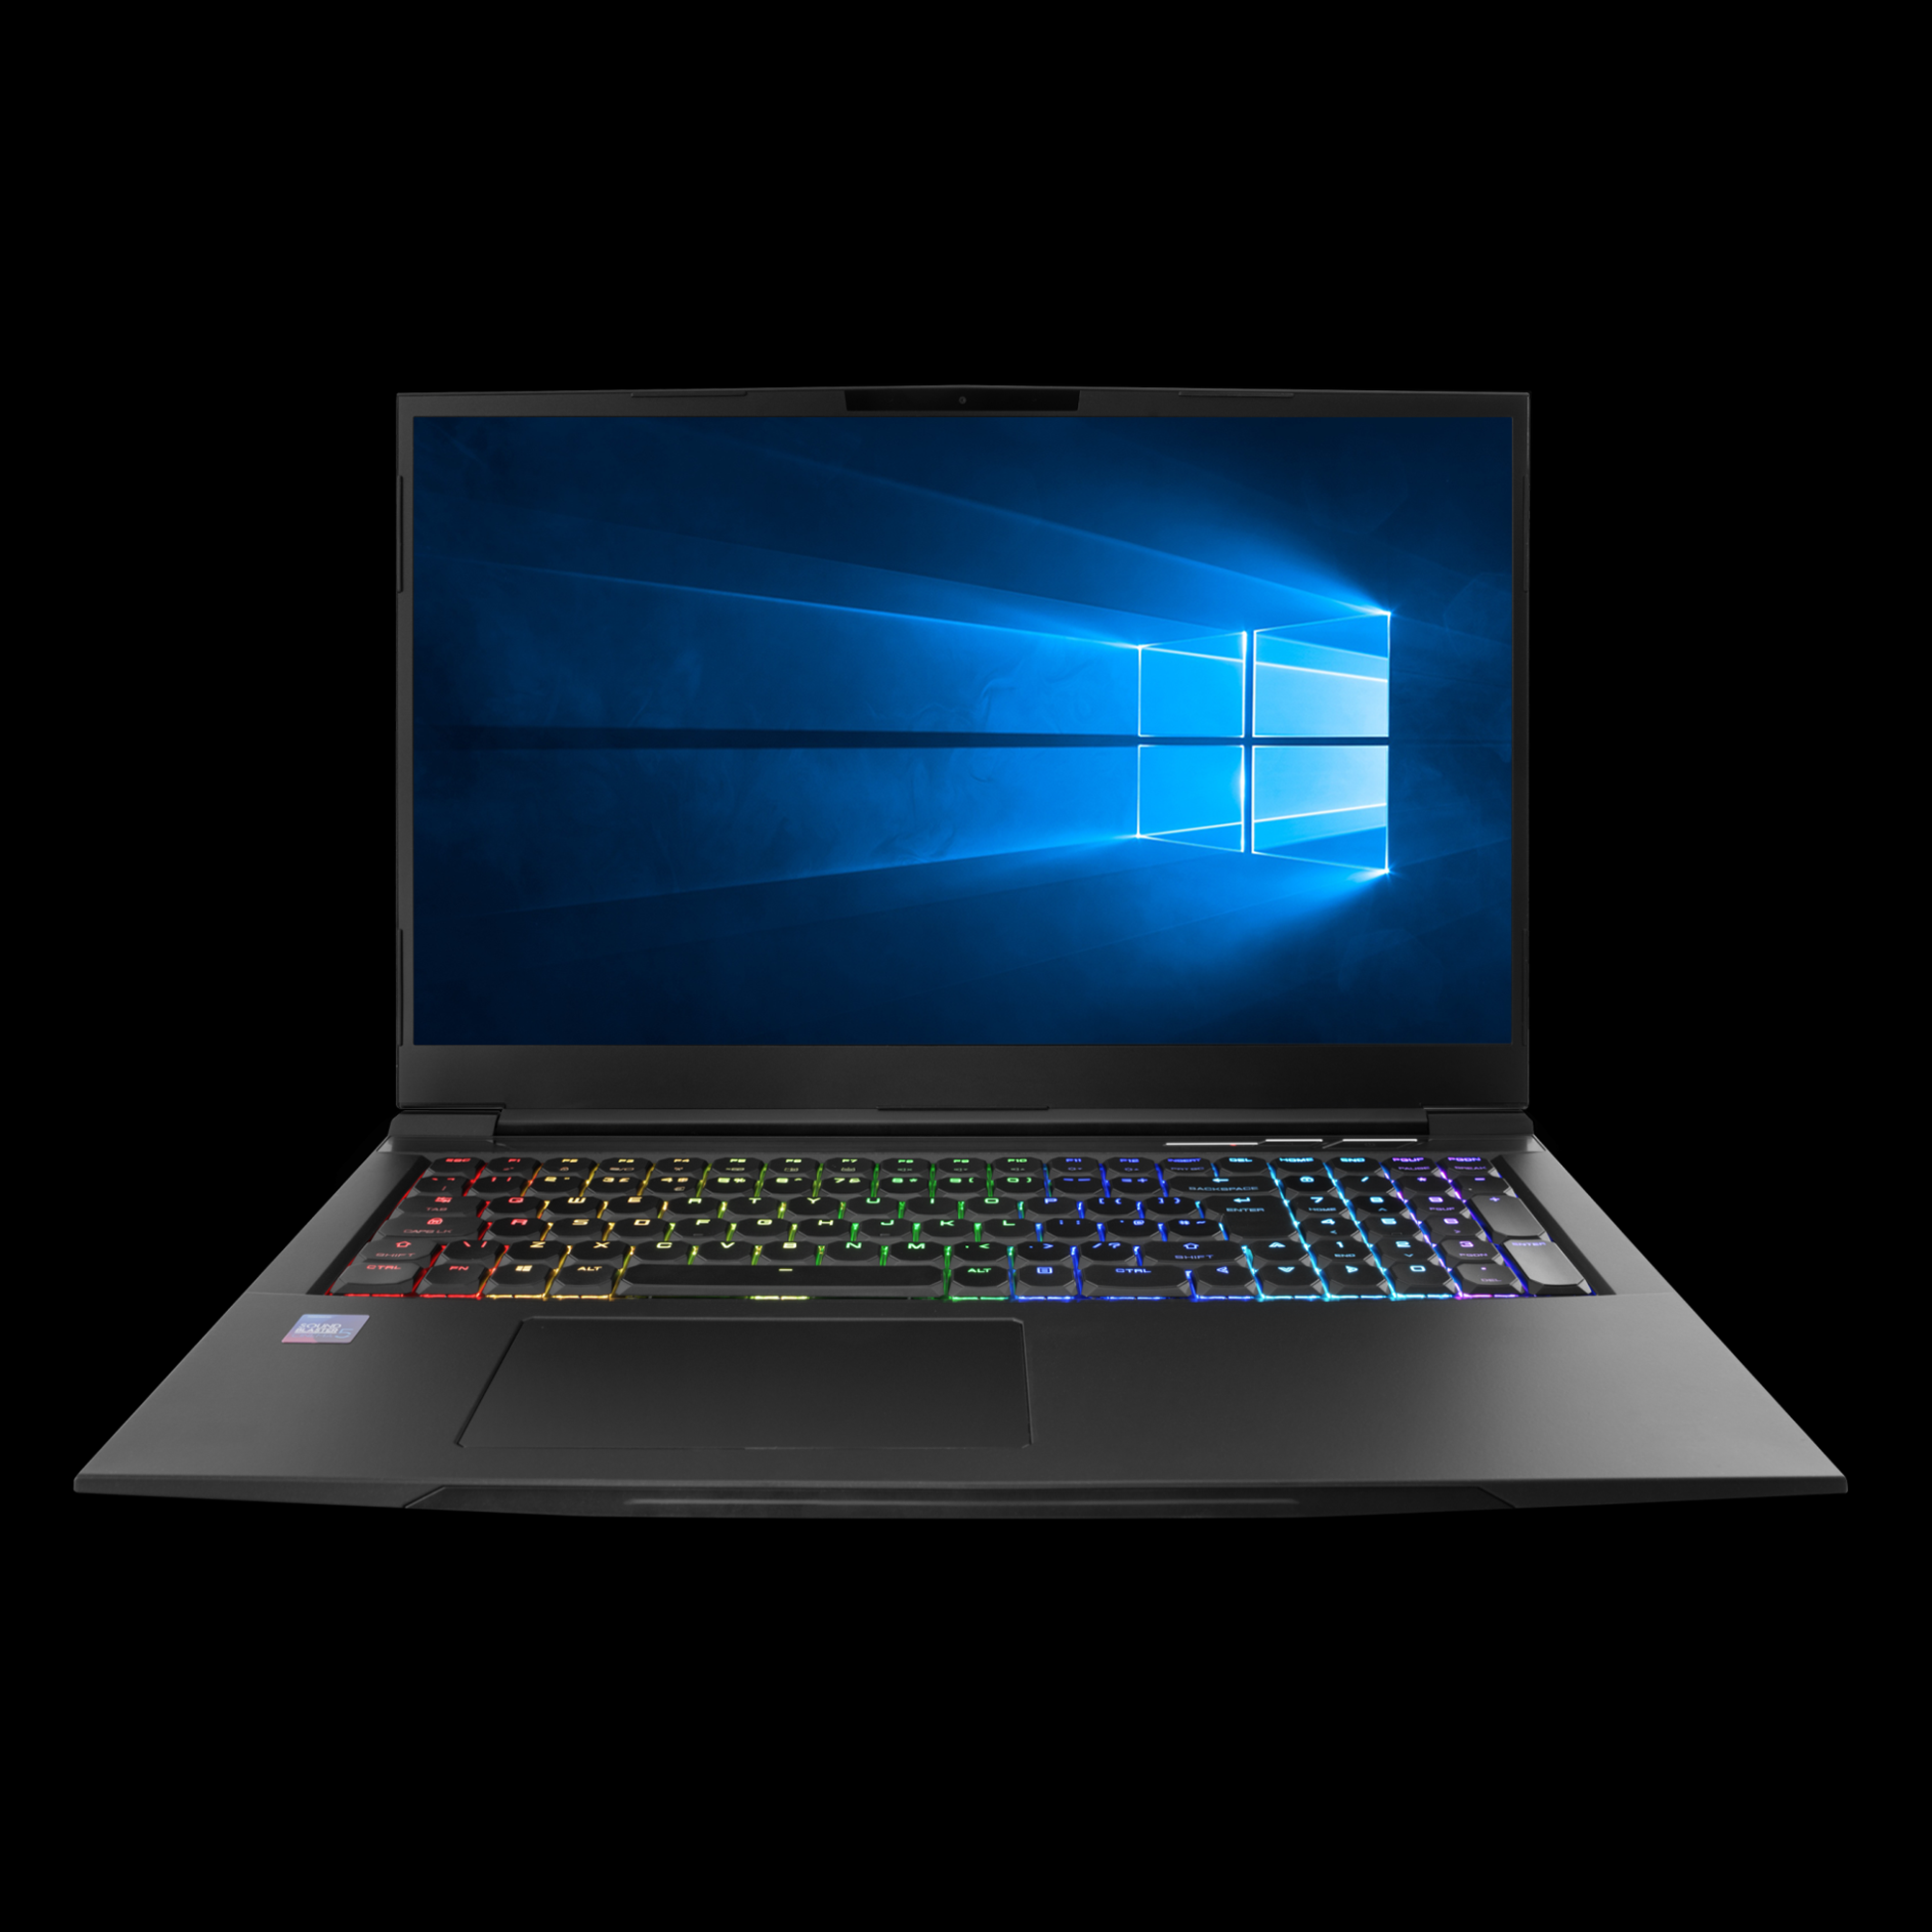 Image of a Chilblast gaming laptop with an RGB keyboard